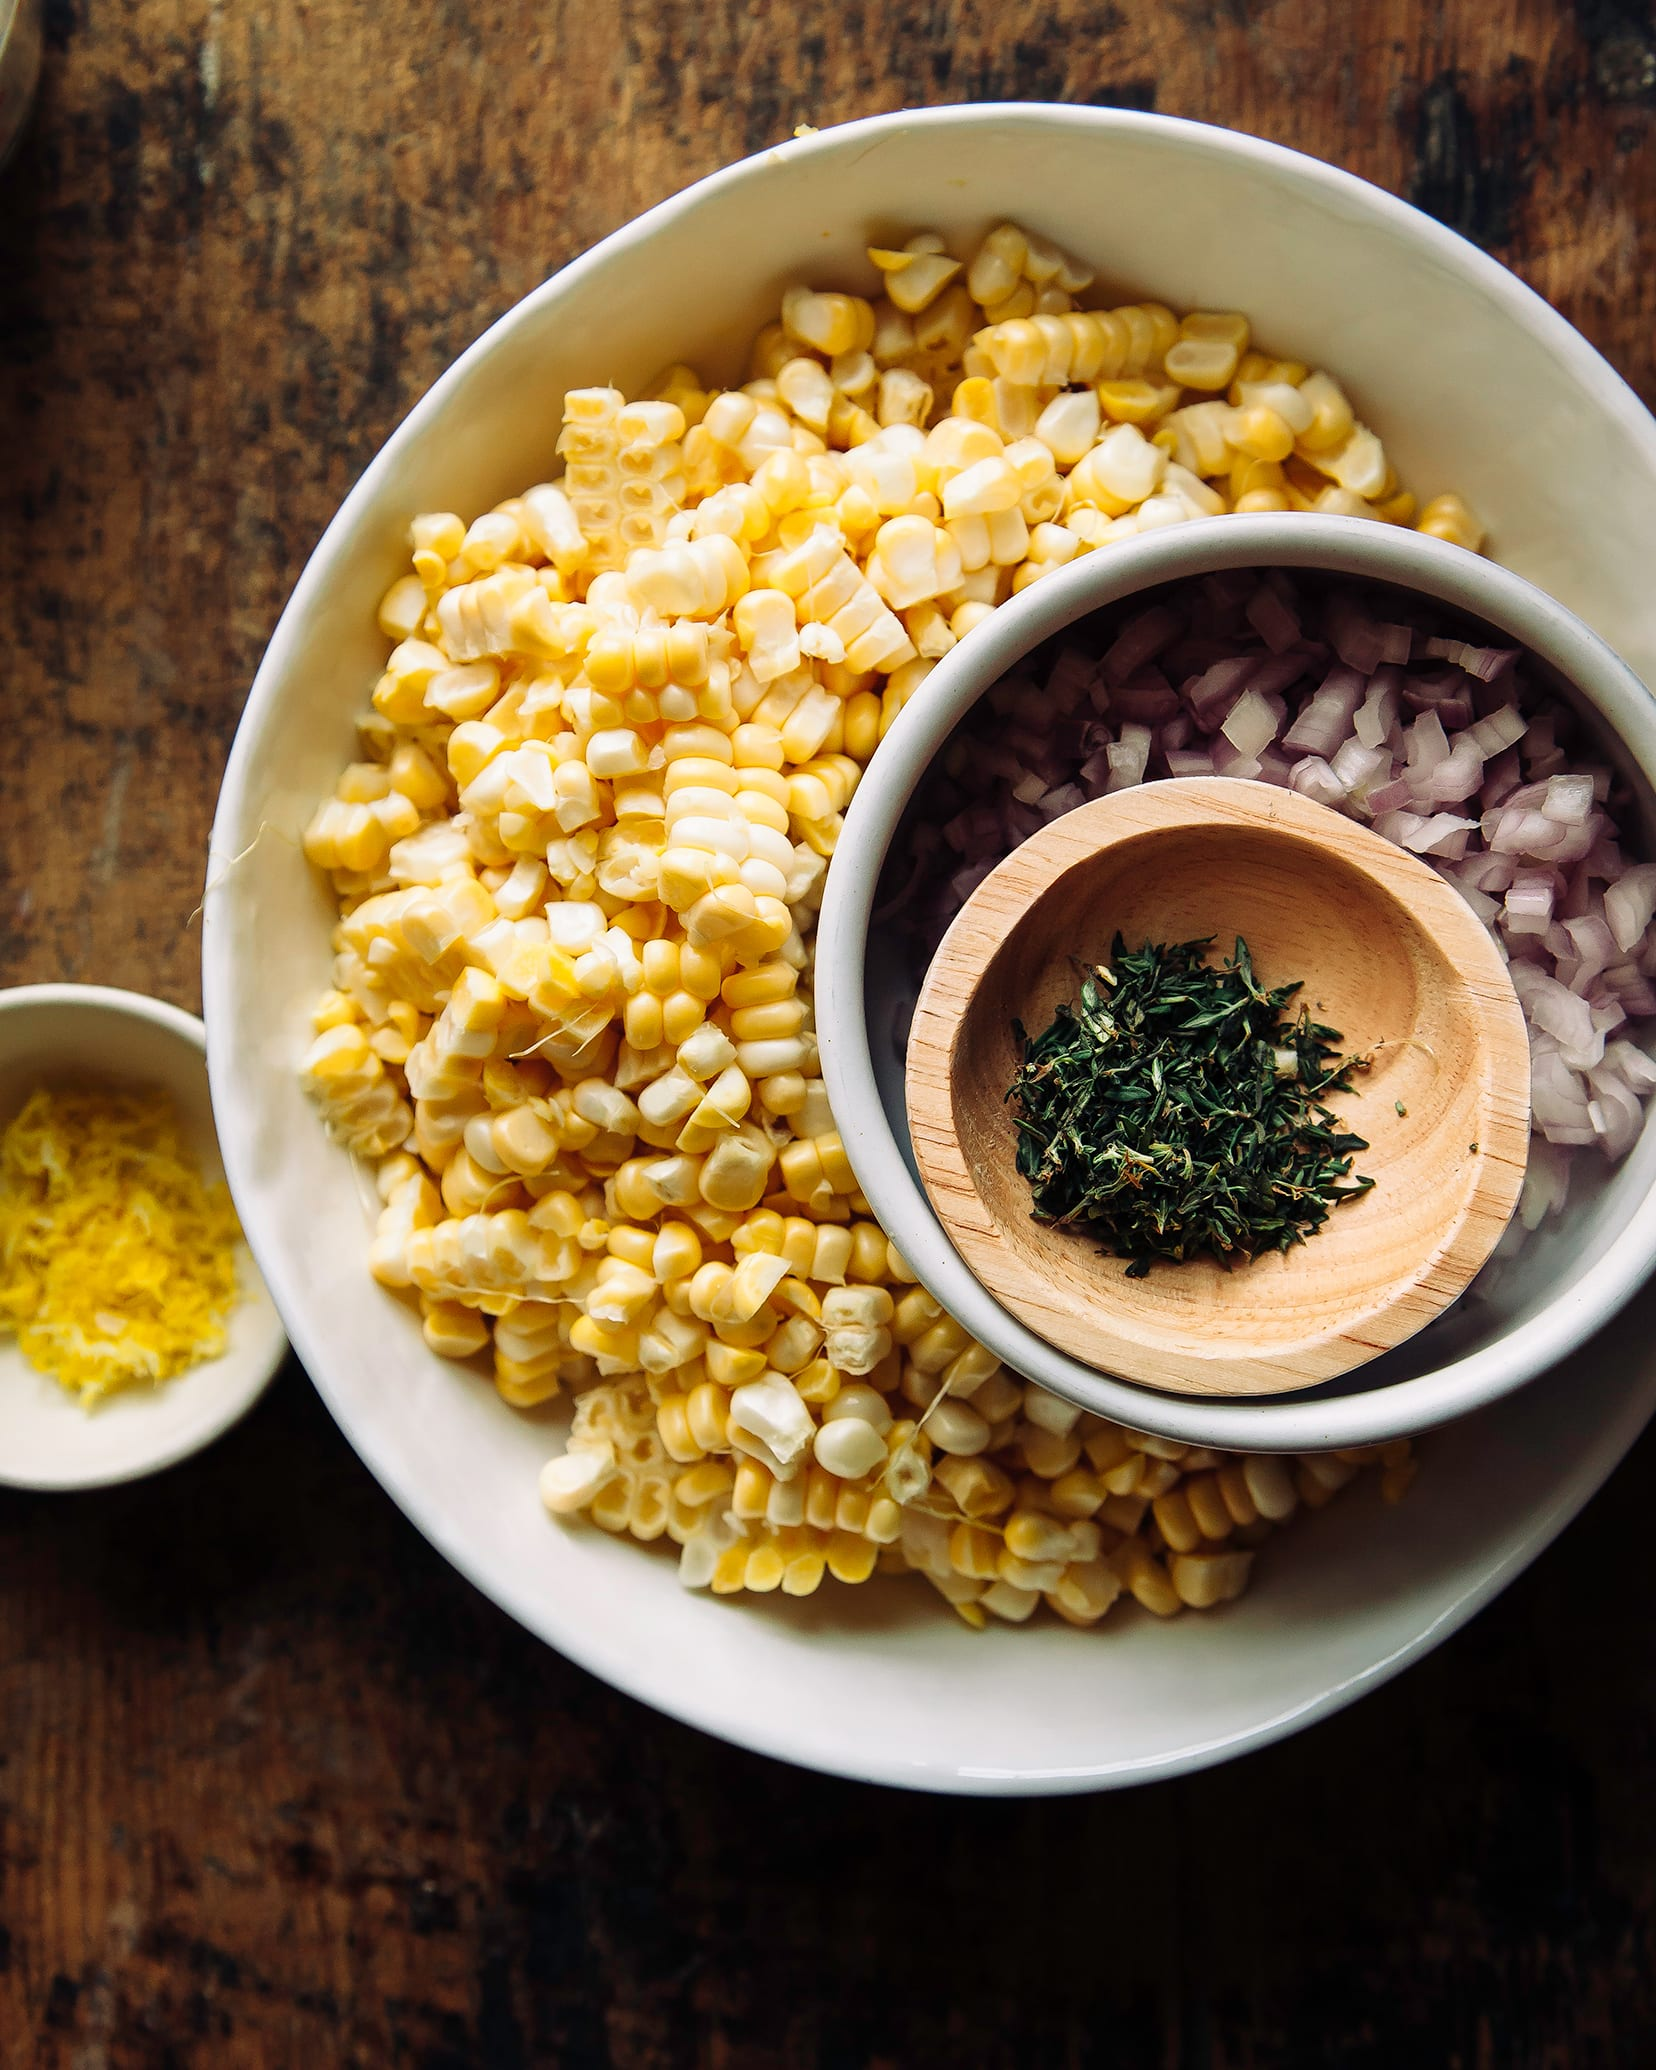 An overhead shot of prepped ingredients in bowls over a worn wooden background.